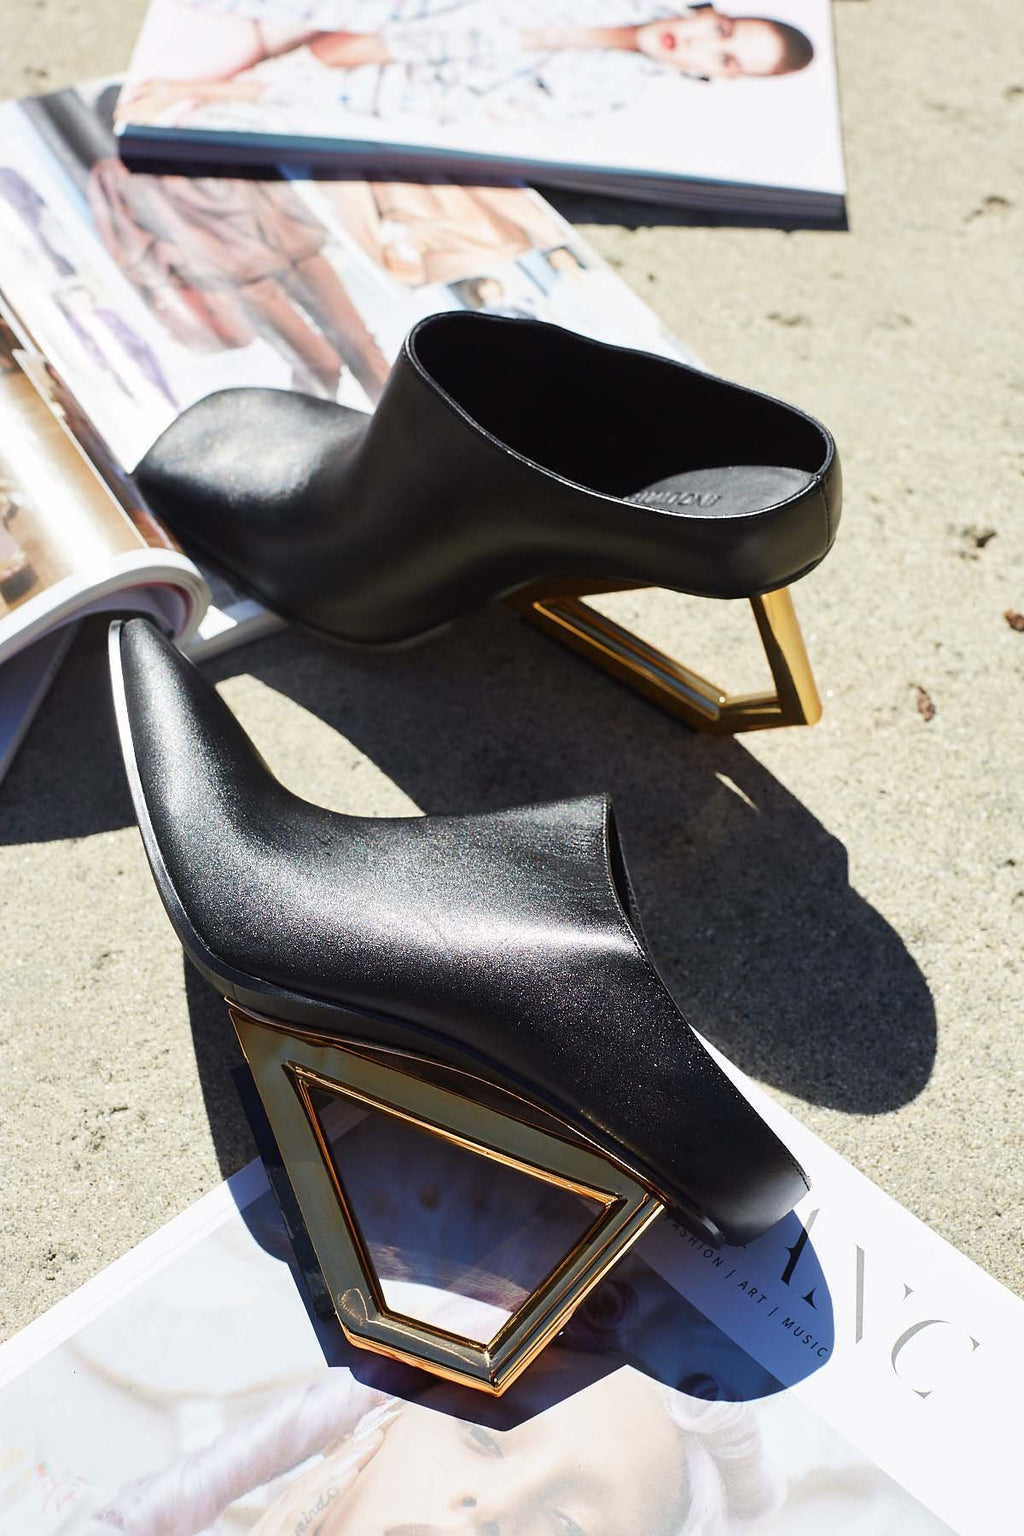 Art Deco Leather Mules in SHOES by J.ING - an L.A based women's fashion line